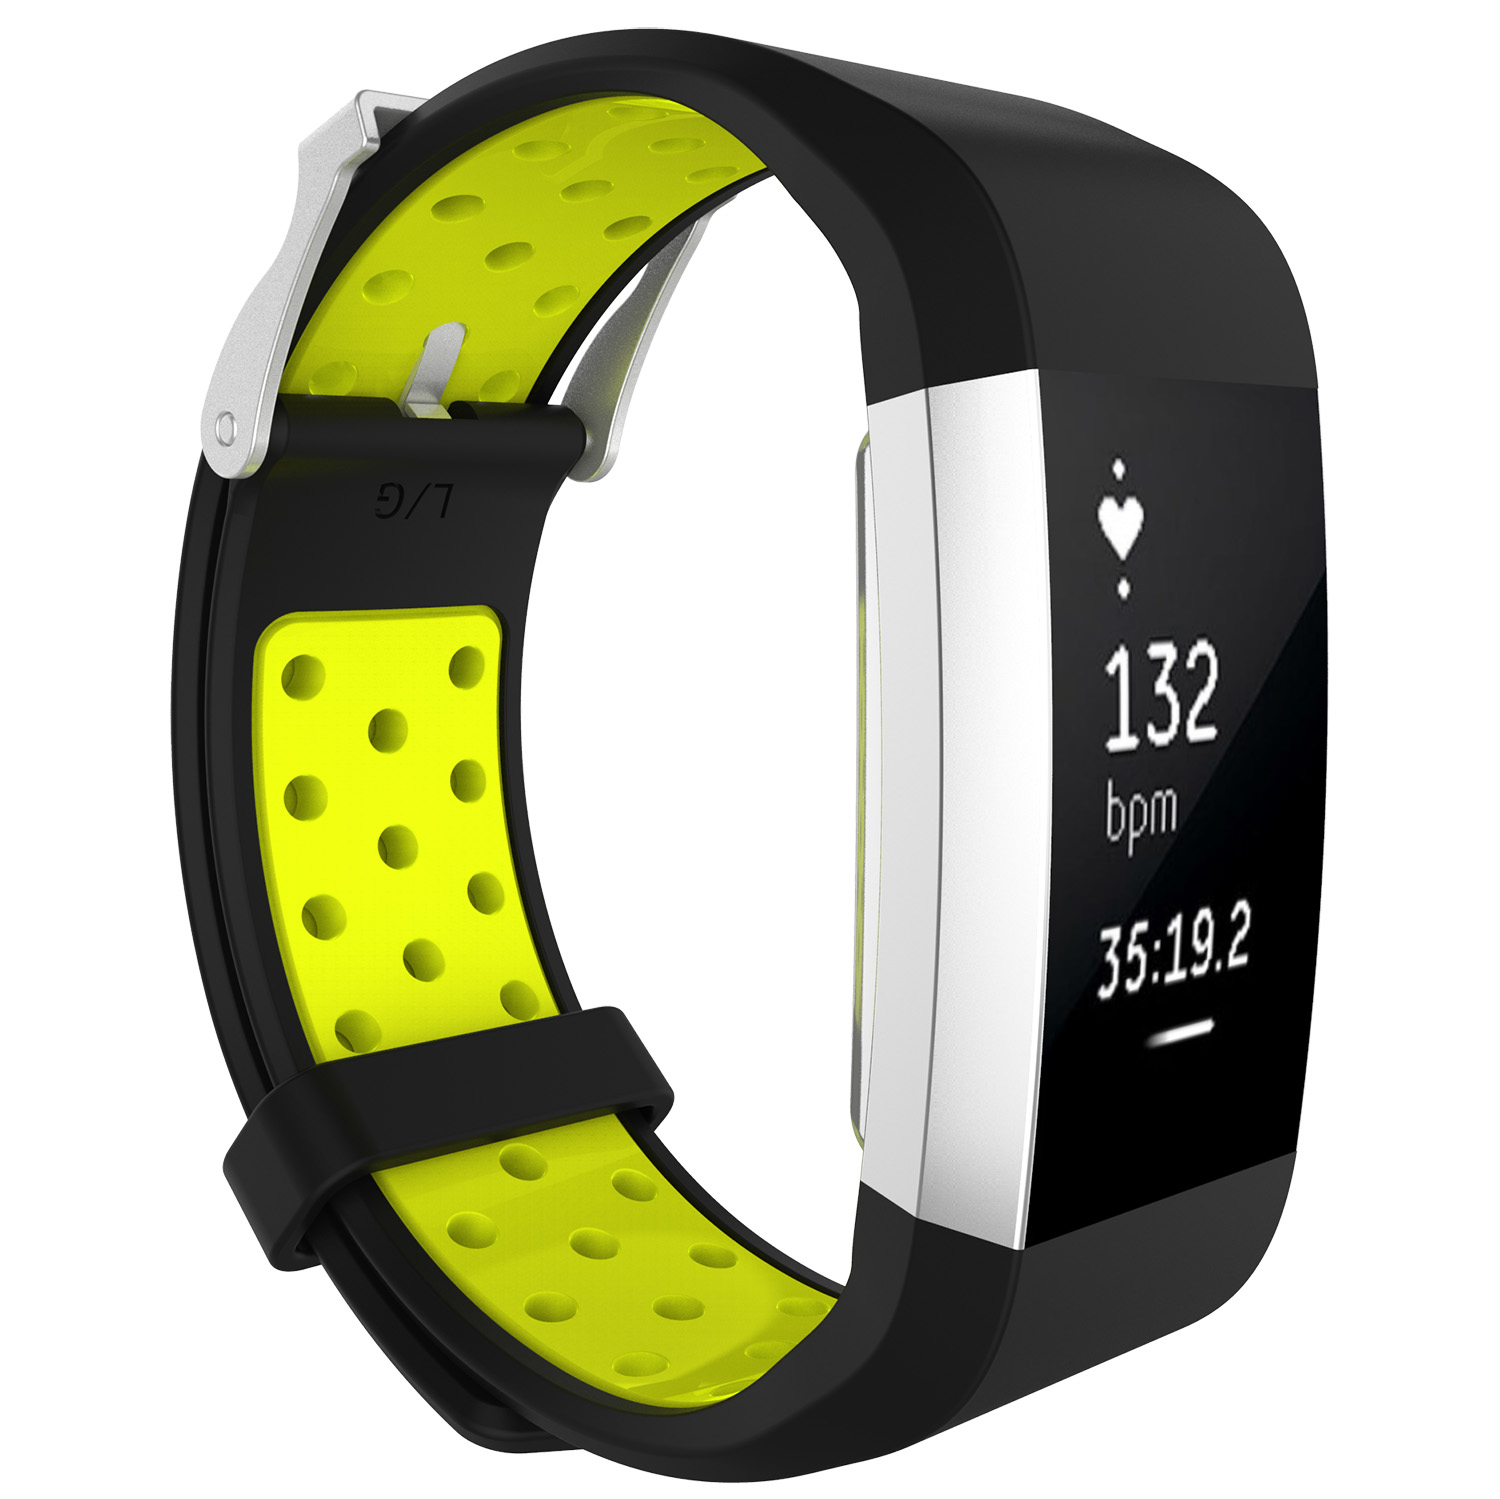 Replacement-Silicone-Wristband-Watch-Strap-Bands-Bracelet-For-Fitbit-Charge-2 thumbnail 81